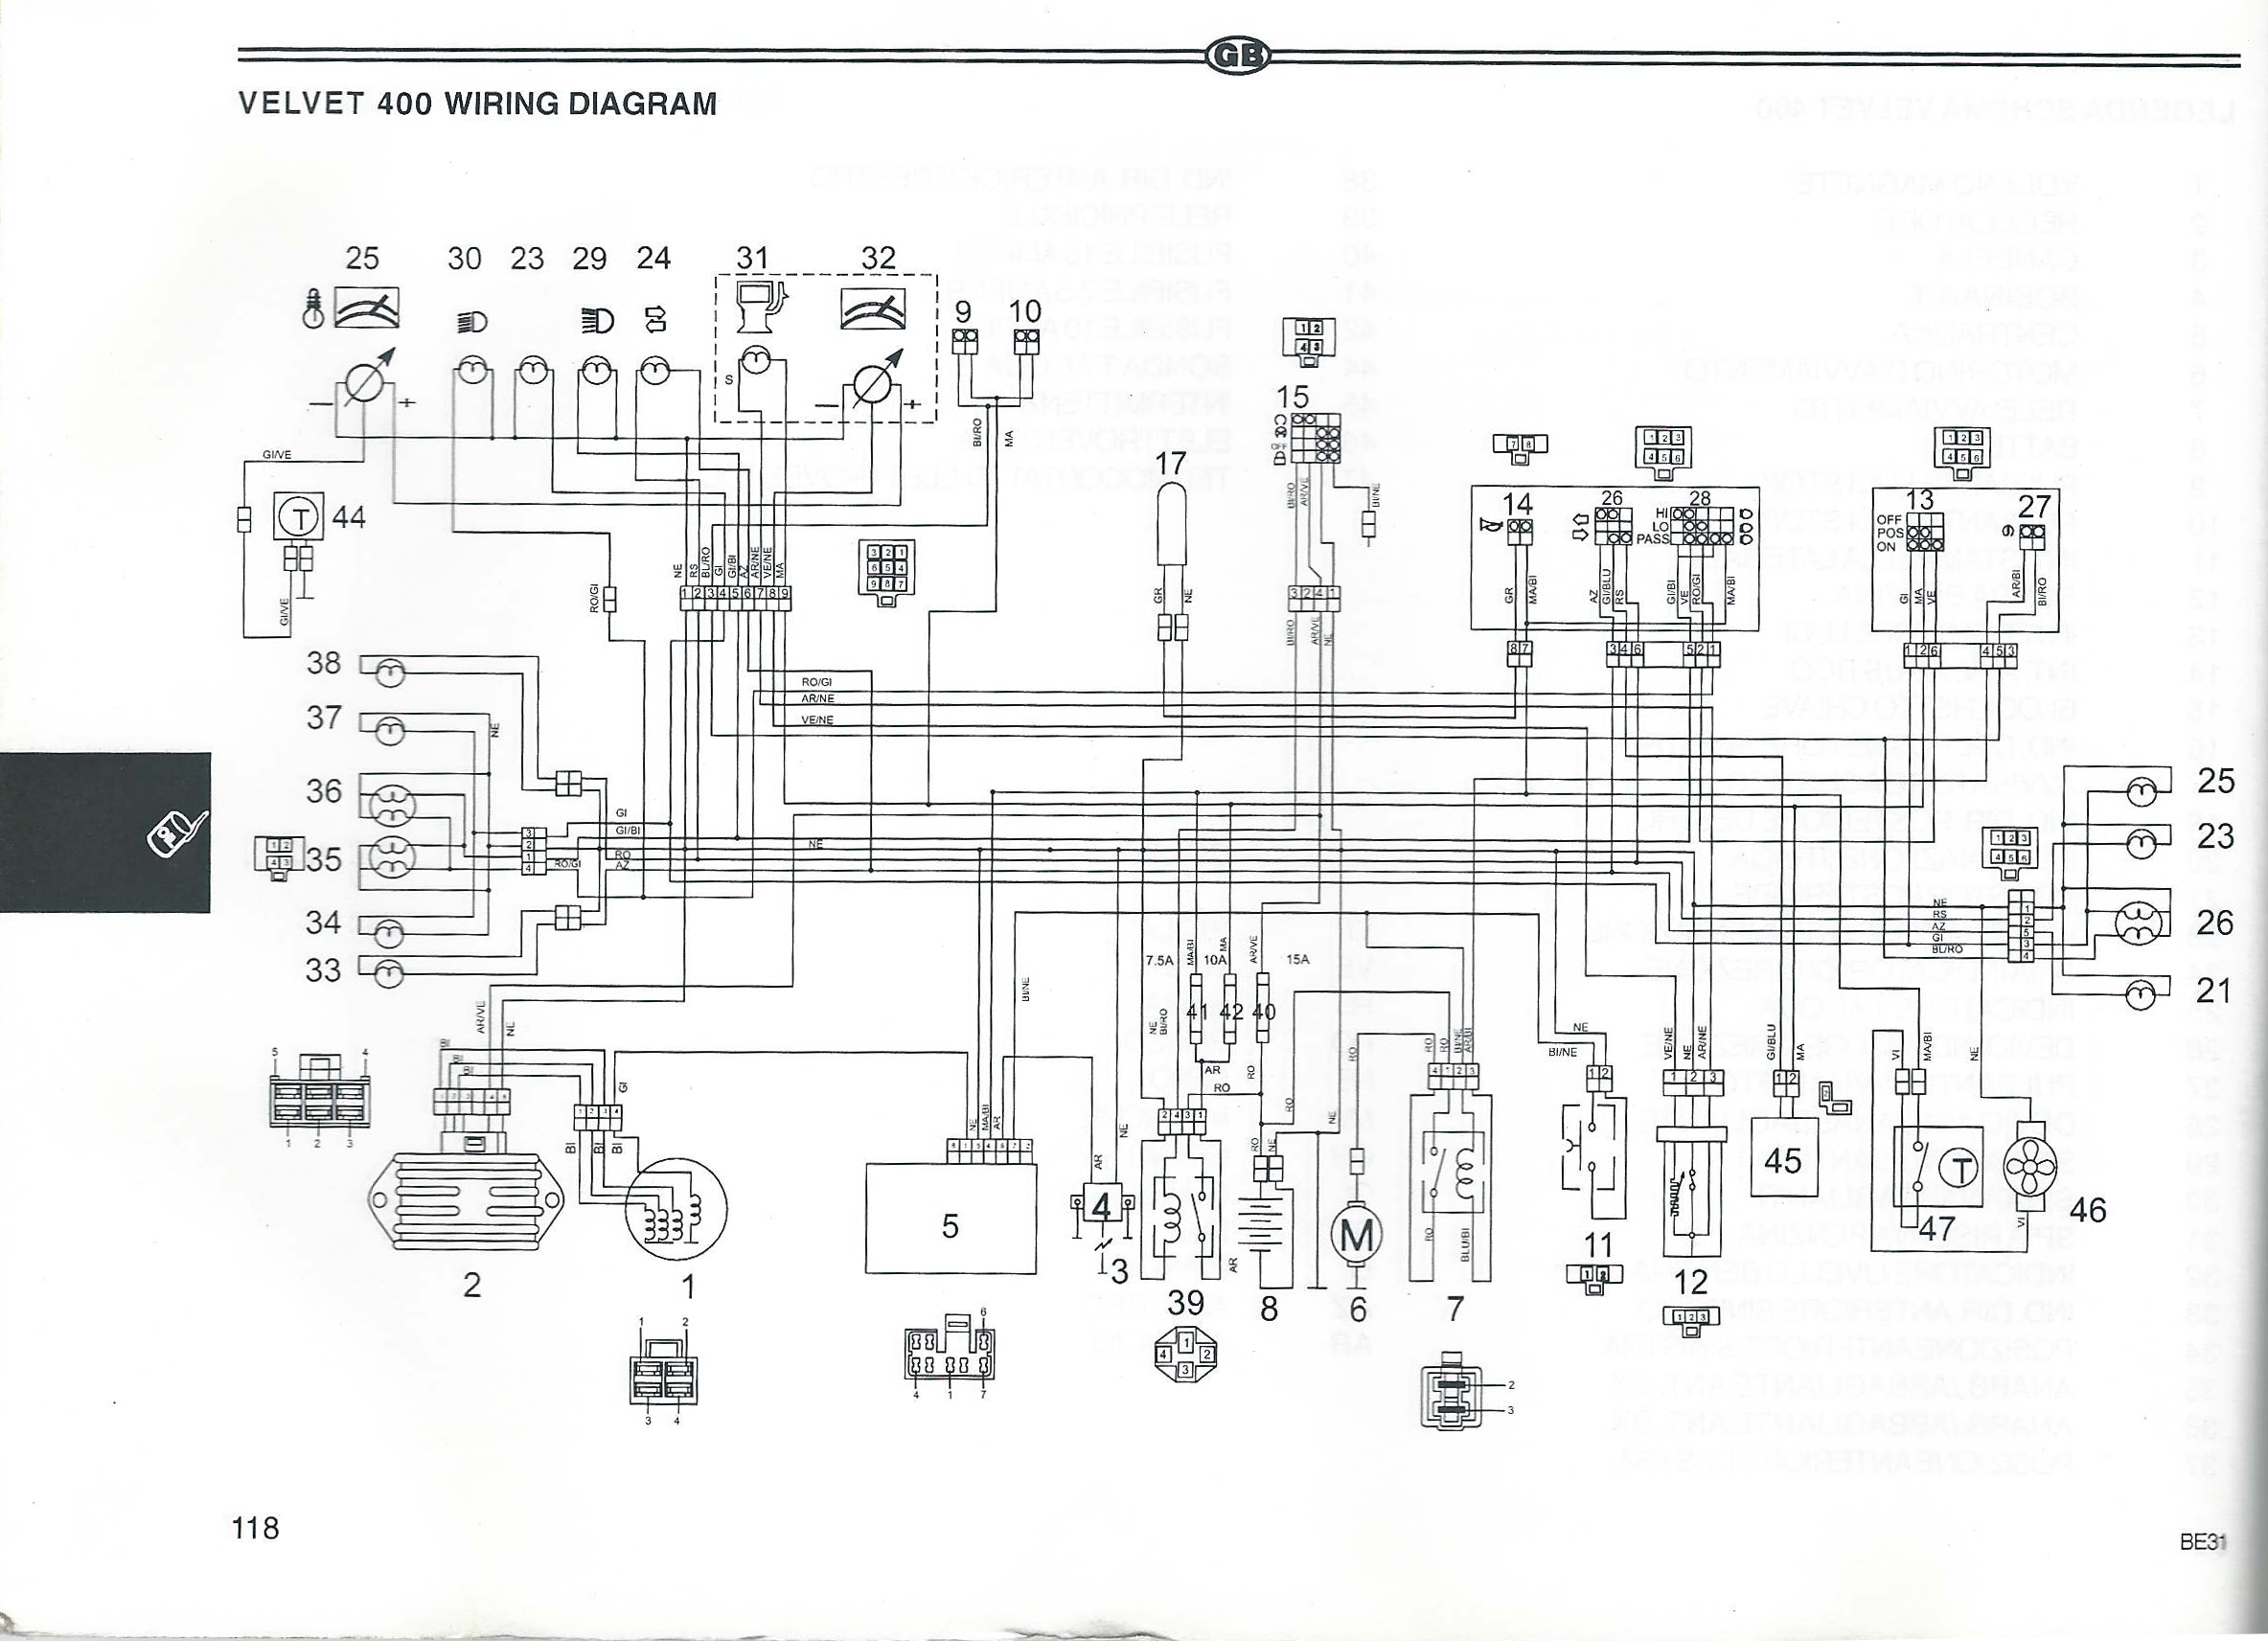 Moped Wiring Diagram Simplified Power Circuit 4 Pin Cdi Kymco Diagrams And Schematics Ignition Simple Pictures Images